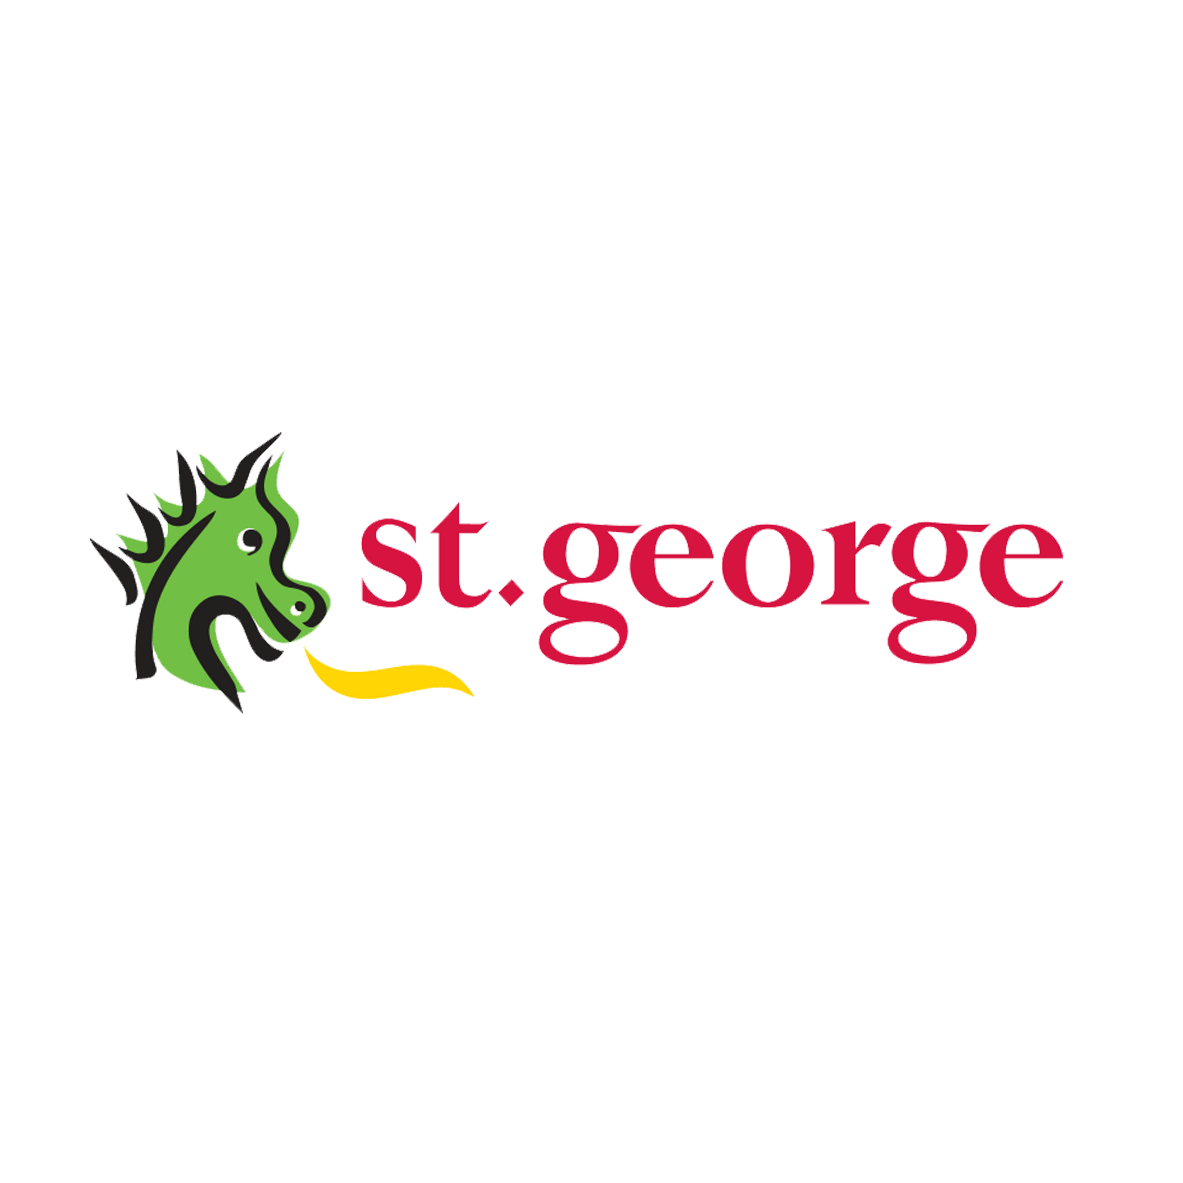 st george bank.png